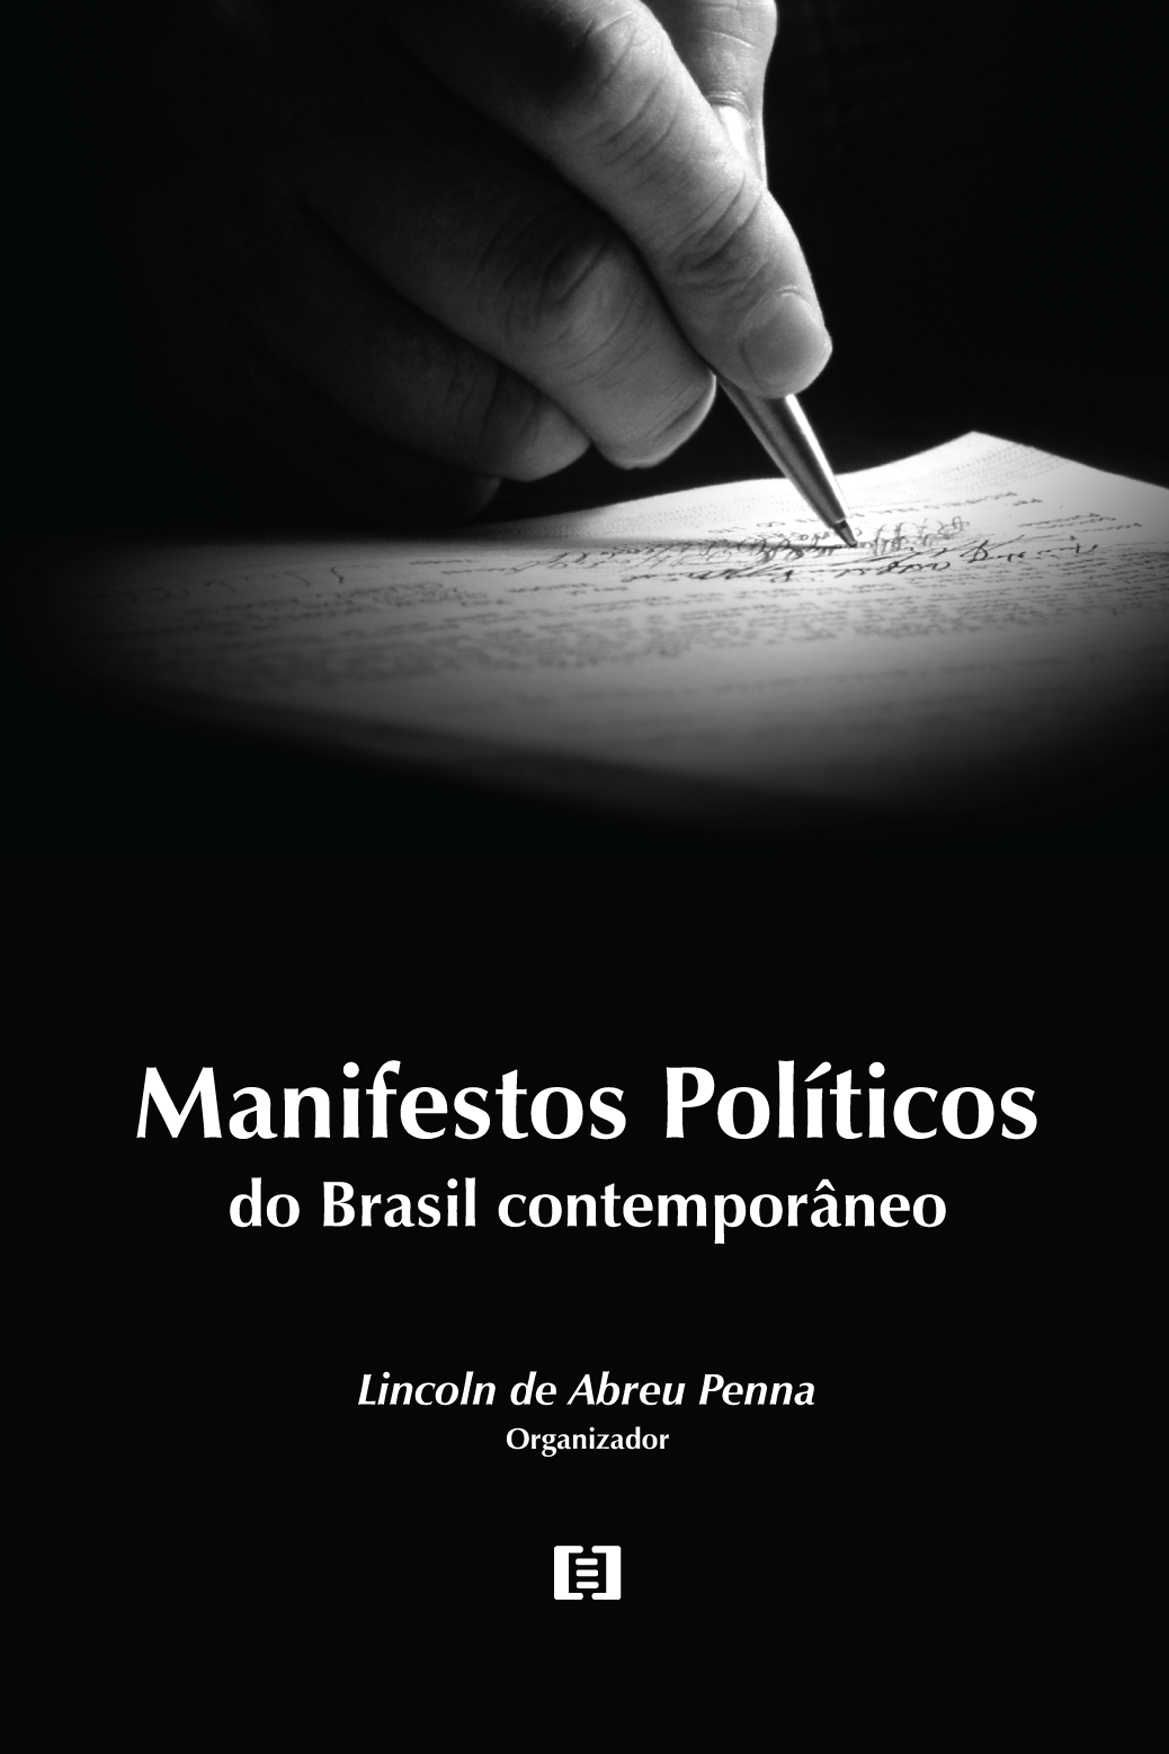 Manifestos Políticos: do Brasil contemporâneo